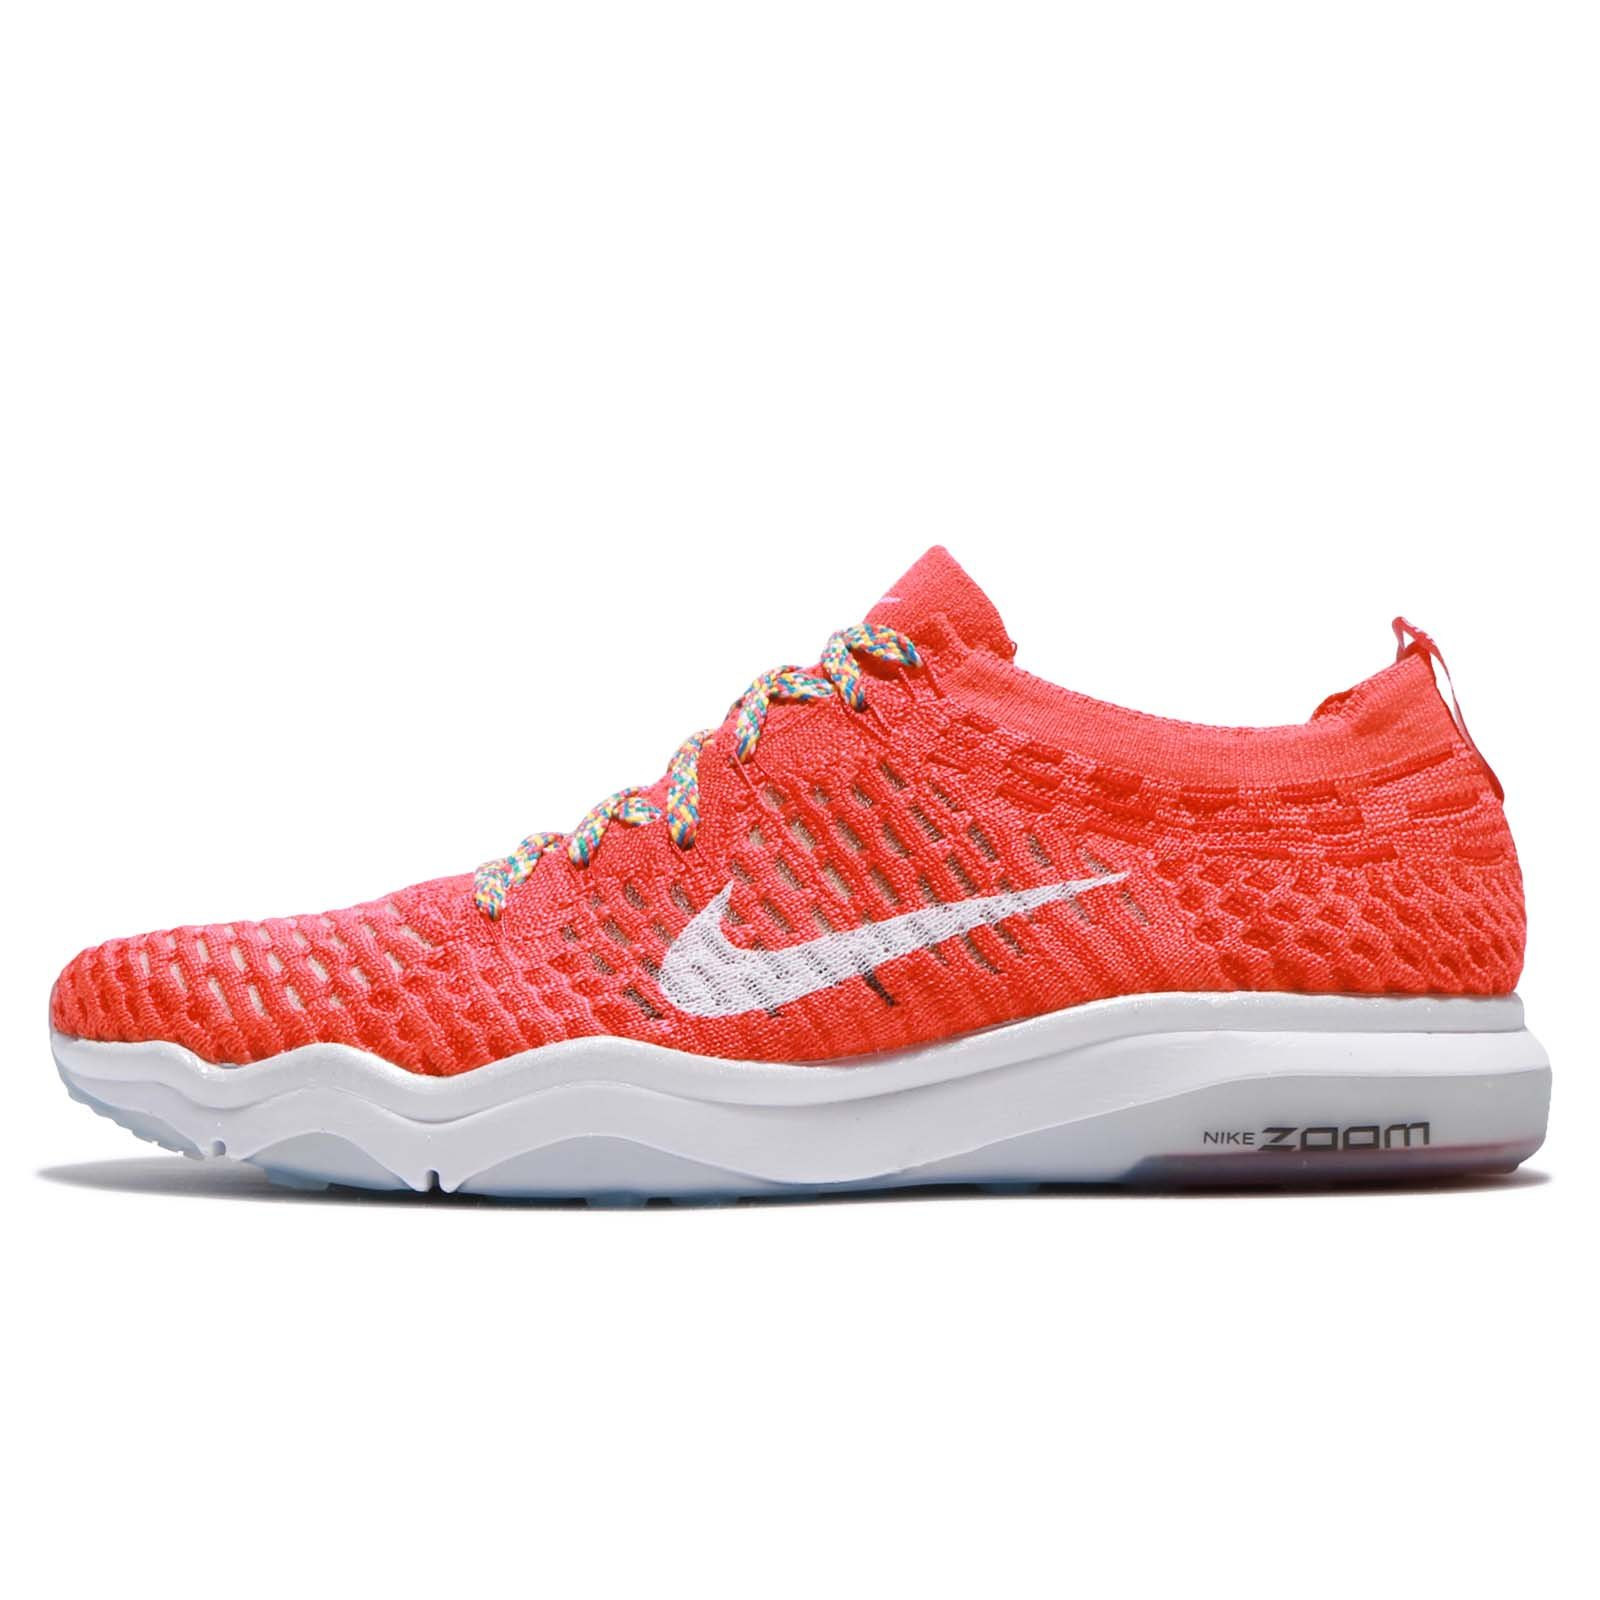 NIKE Womens W Air Zoom Fearless FK City, Bright Crimson/White, 8 US by NIKE